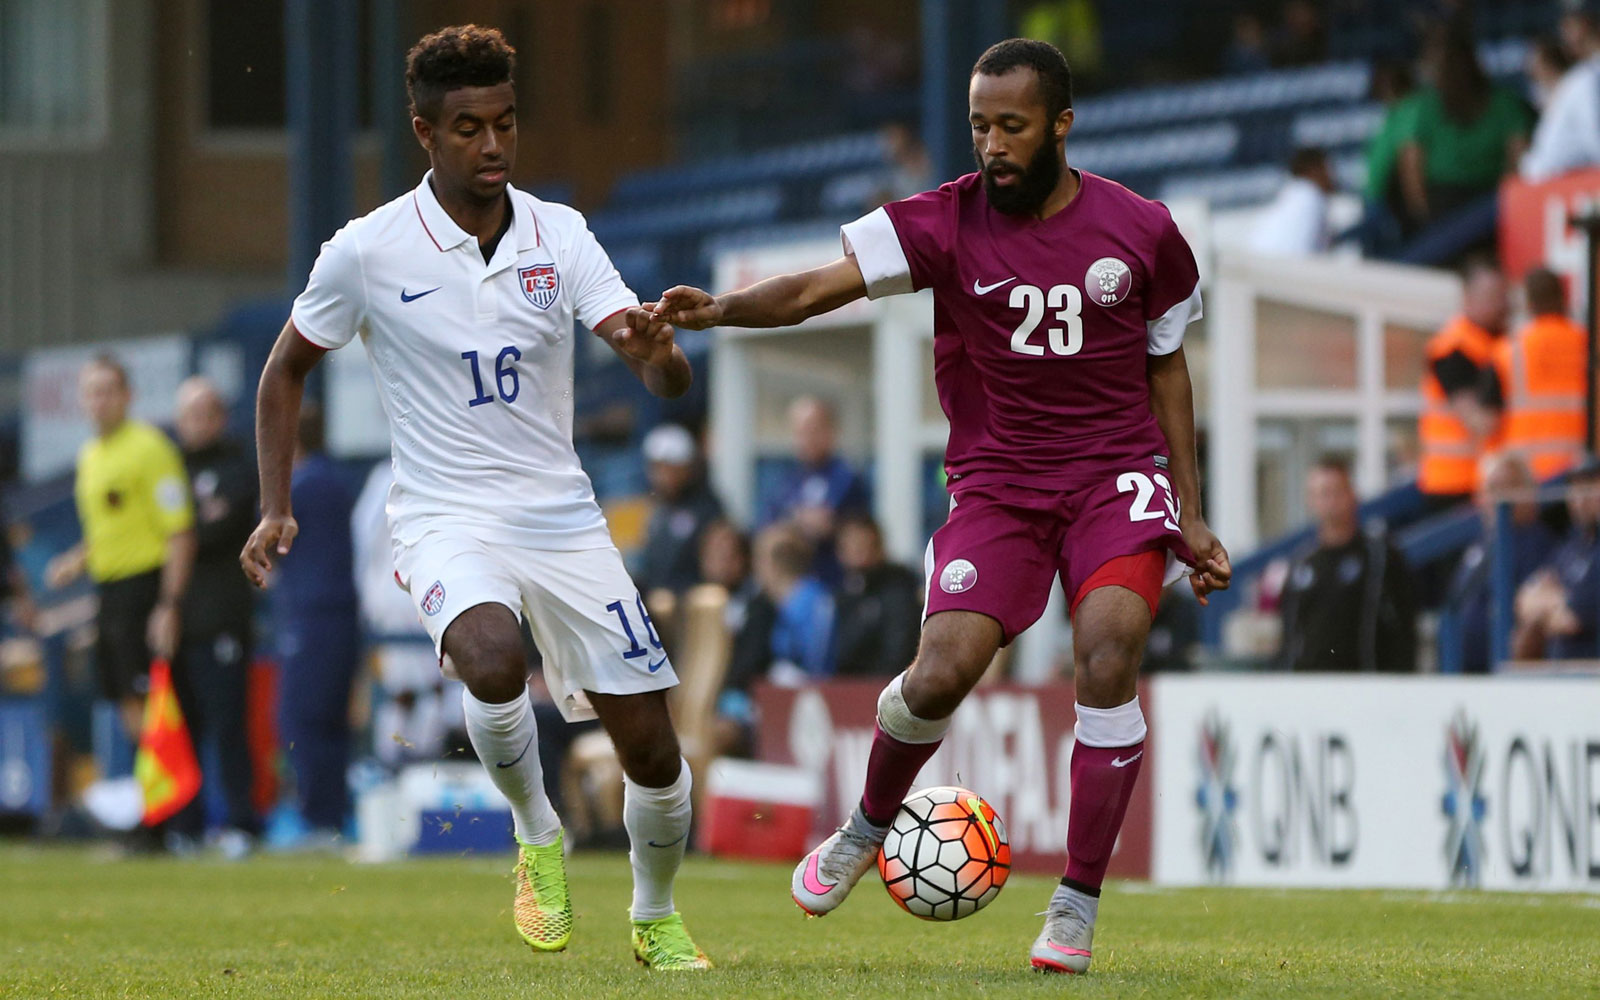 Gedion Zelalem made his U-23 debut off the bench in the USA's 2-0 win over Qatar in England in the final tune-up before Olympic qualifying